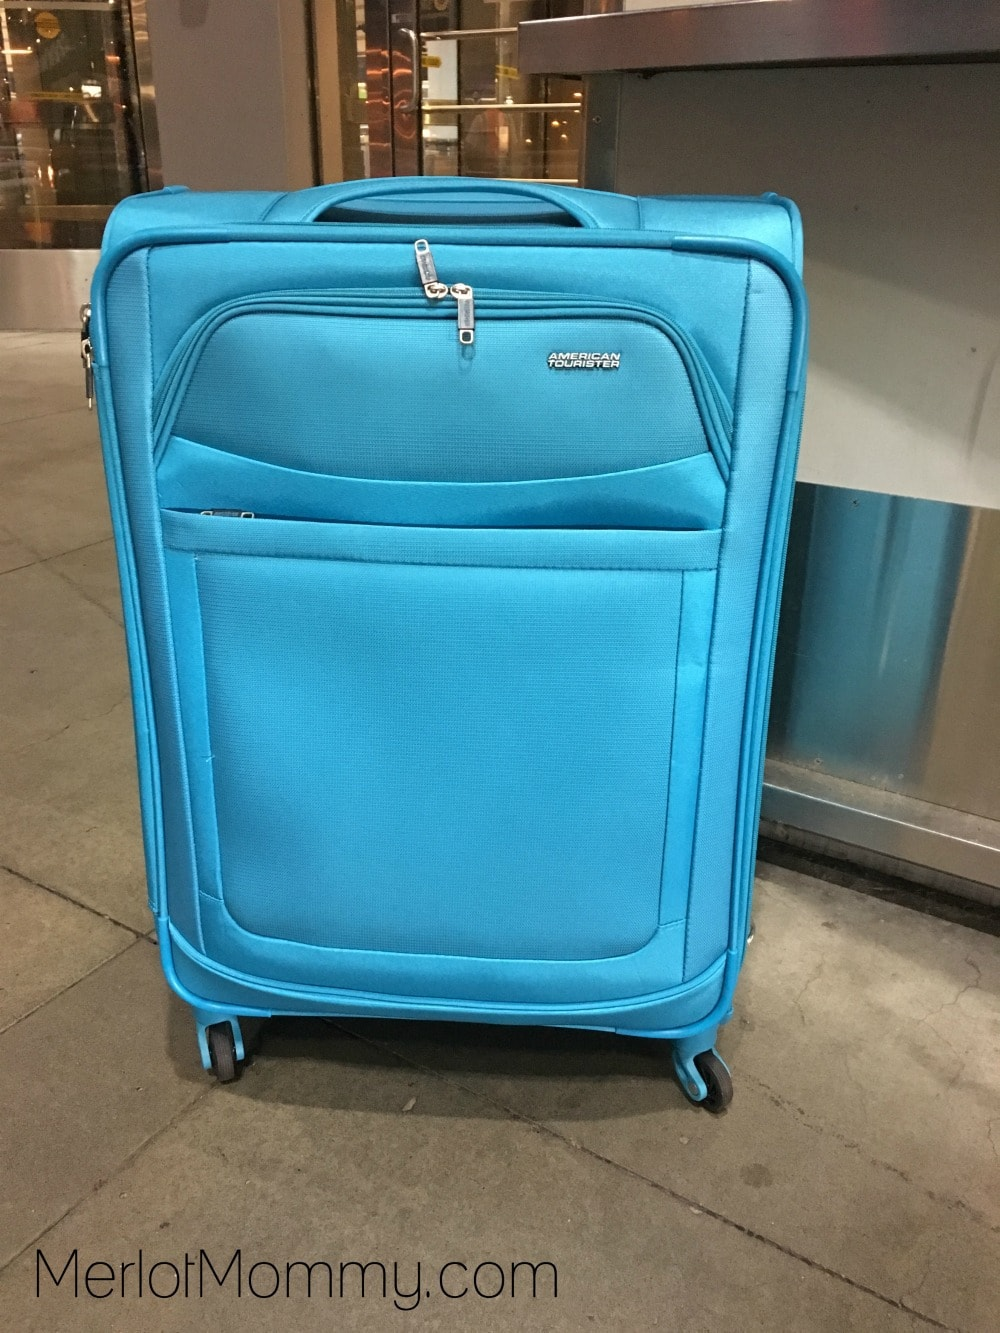 Travel Light with the American Tourister iLite MAX Luggage